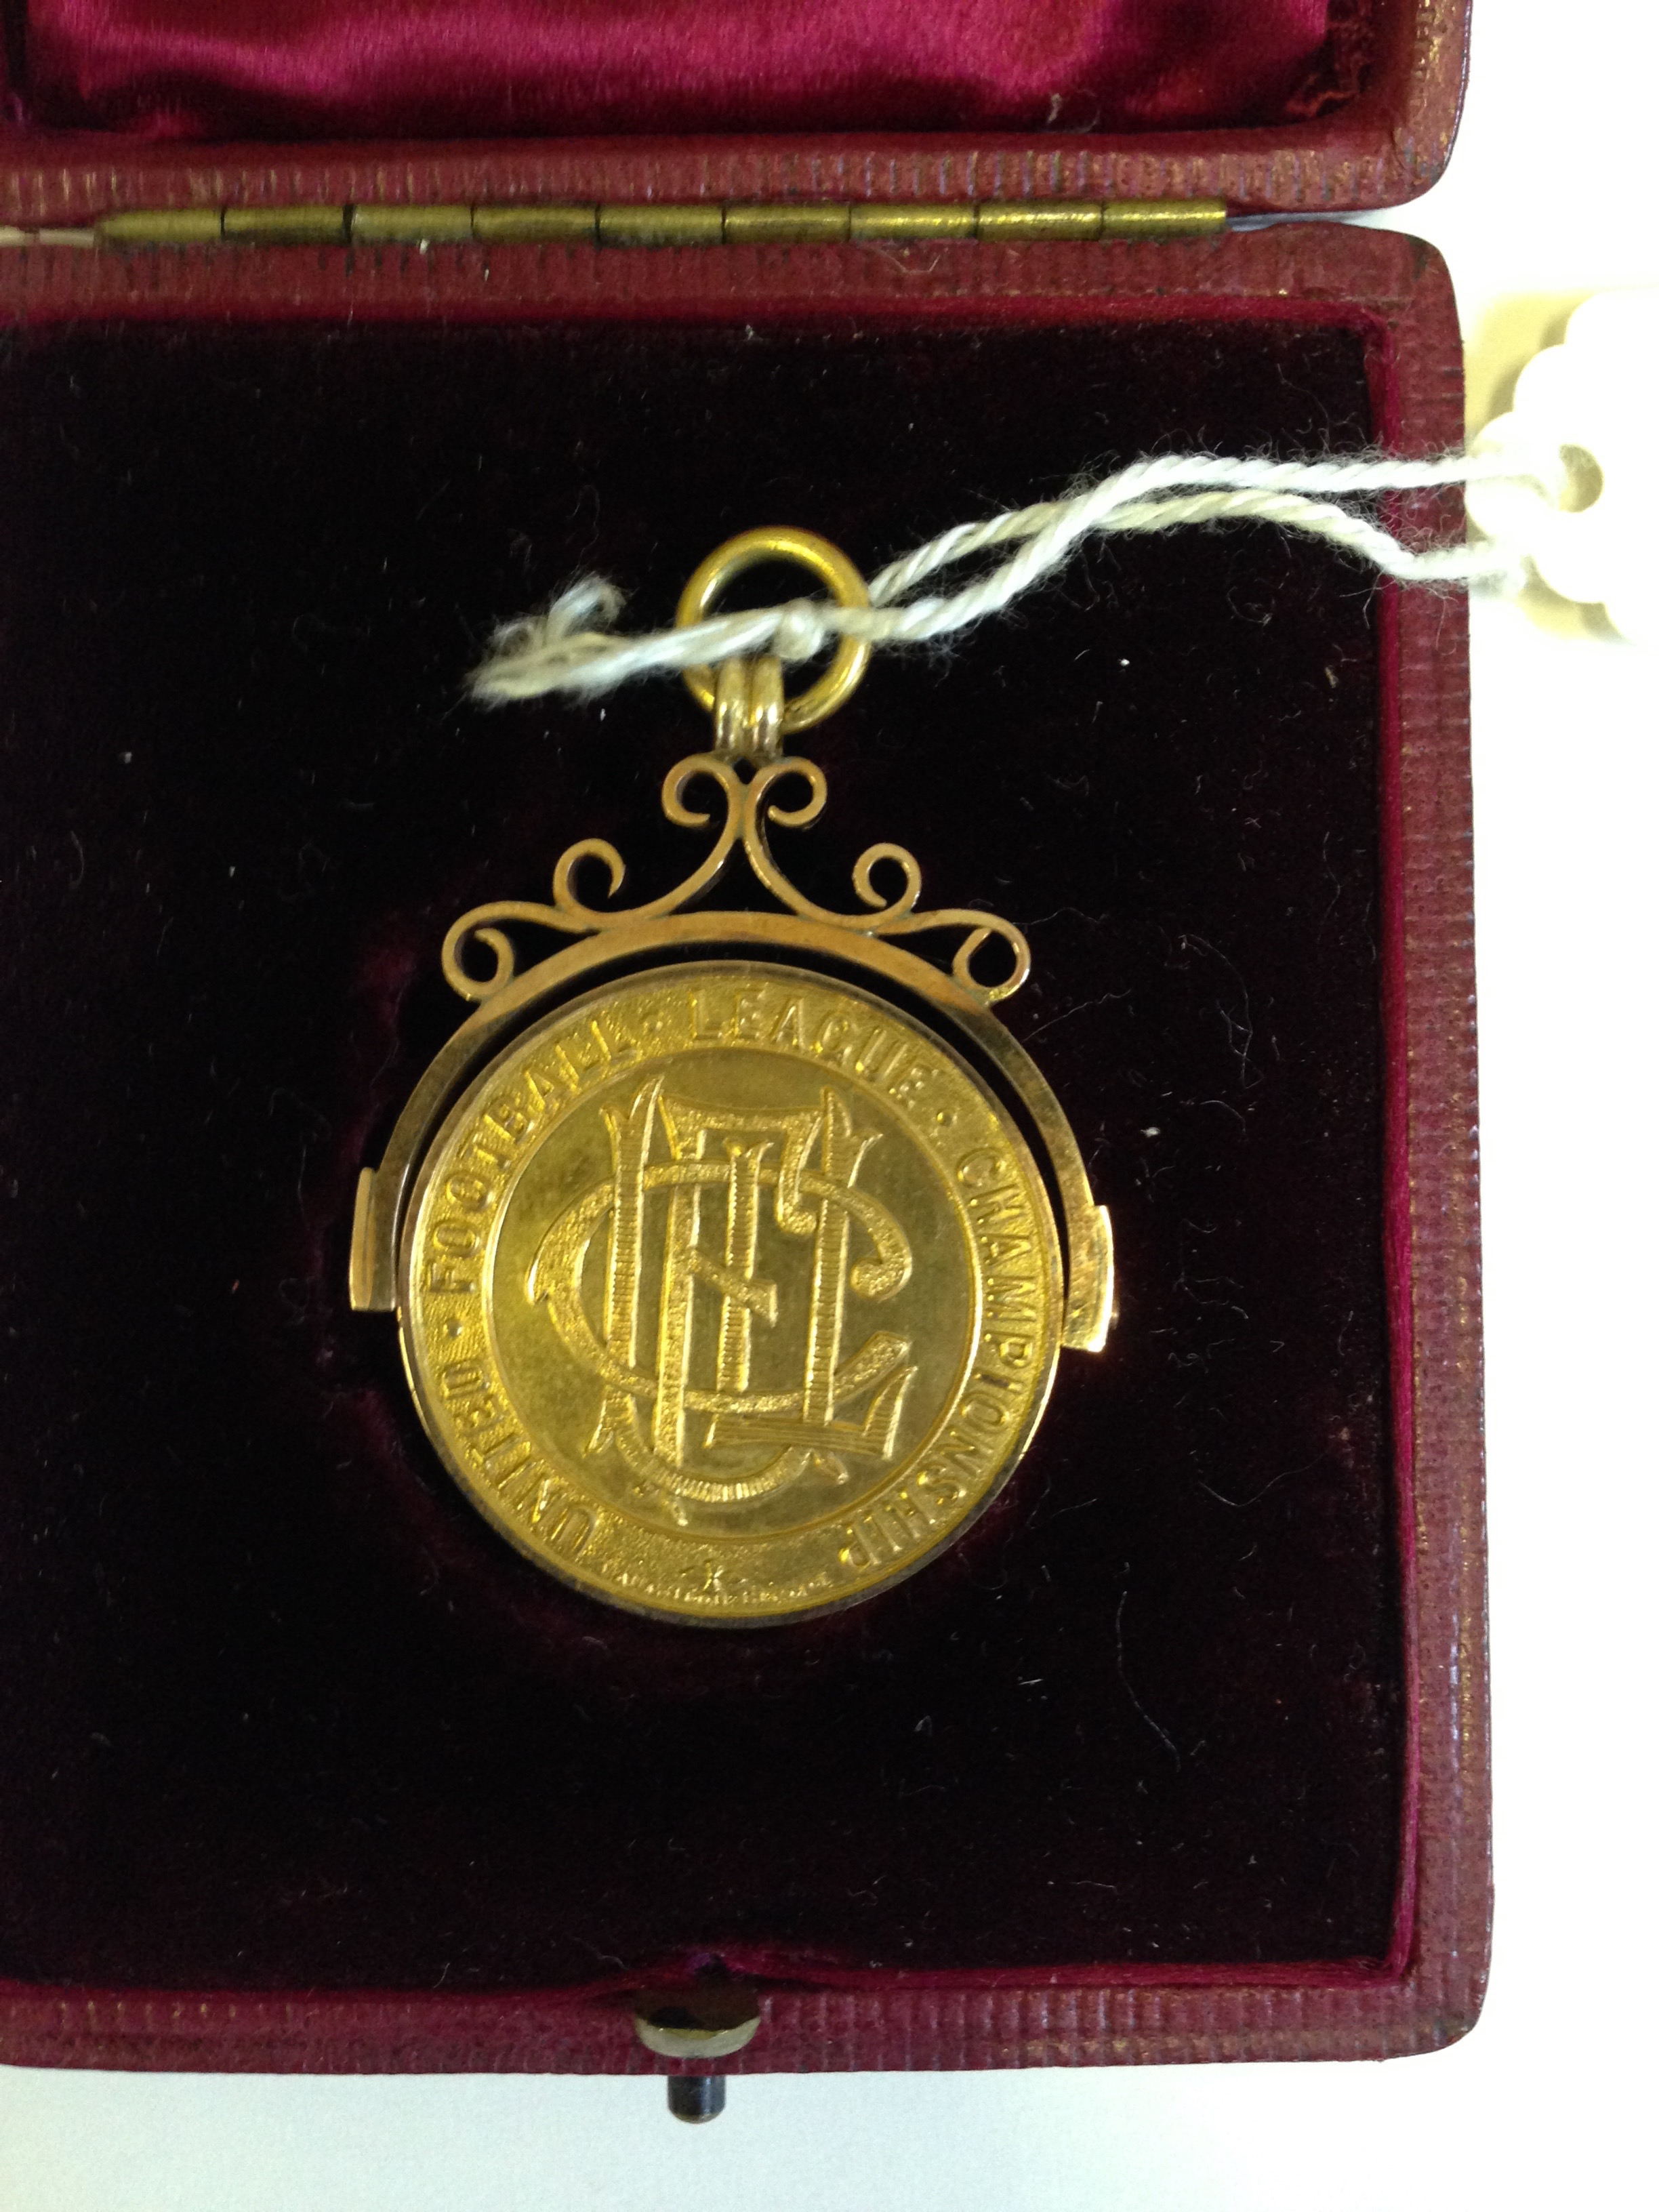 United League champions medal 1897